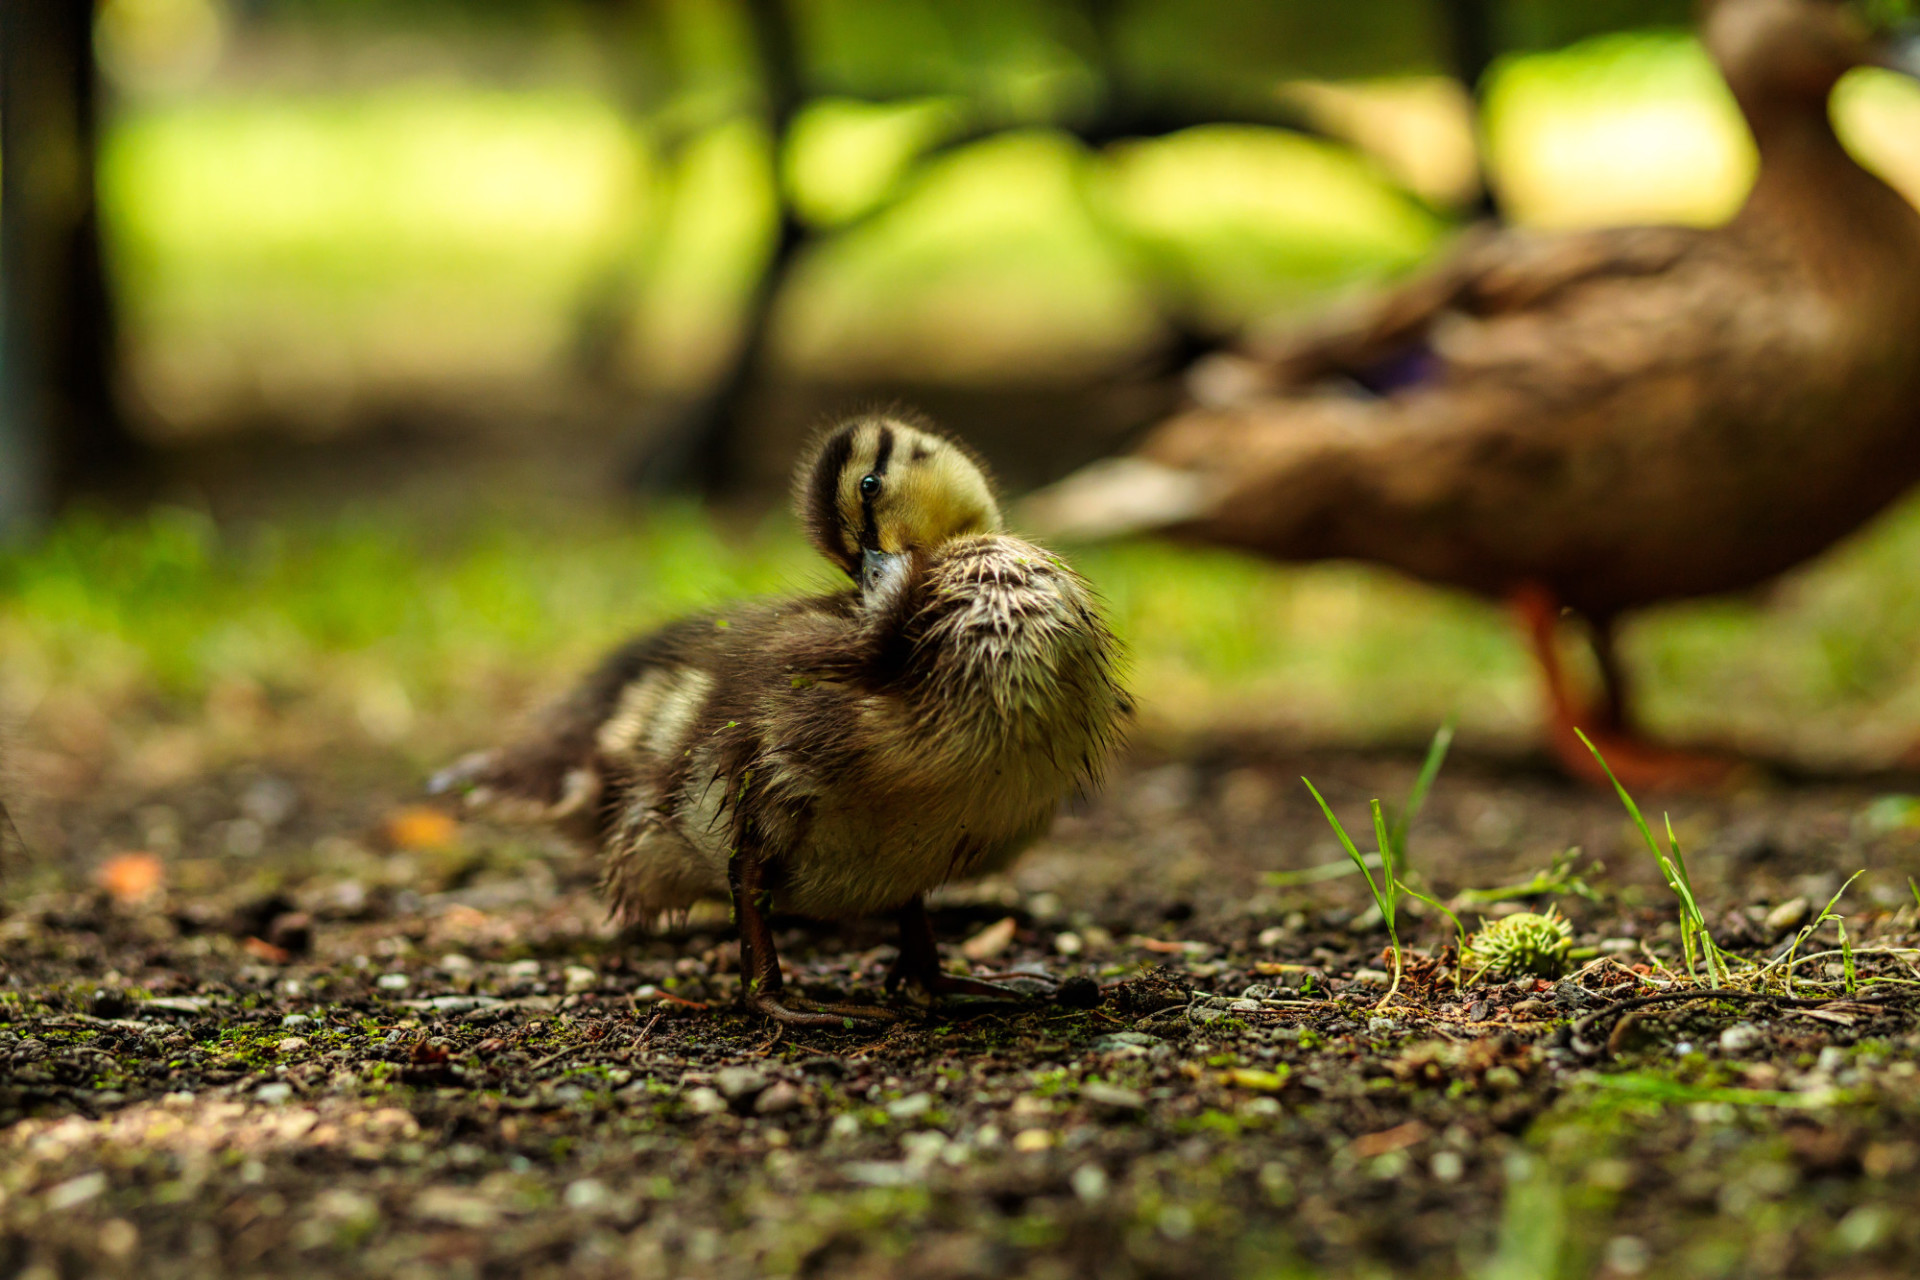 Duckling preening its feathers